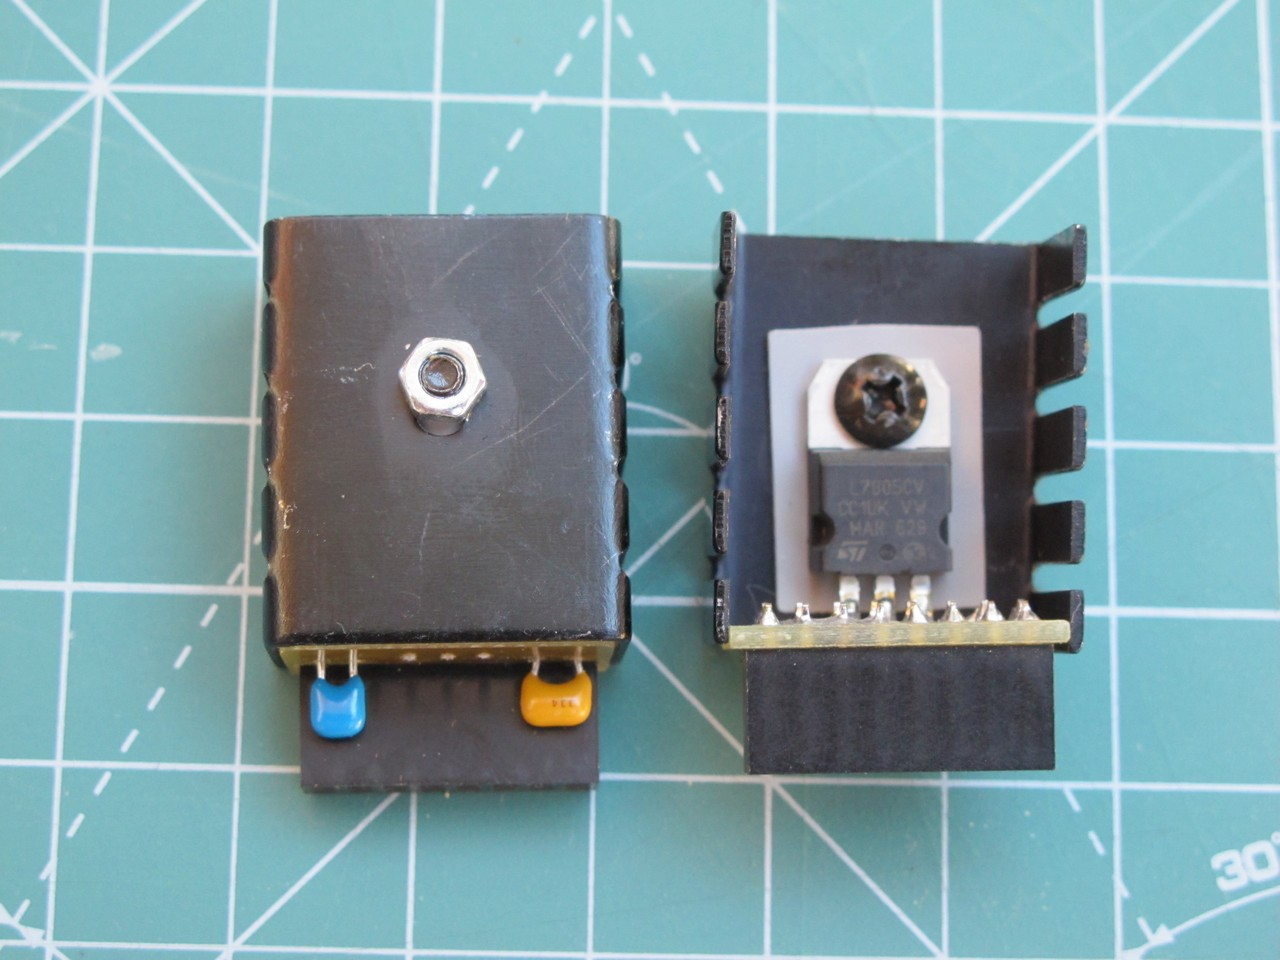 5 V adapter, front view